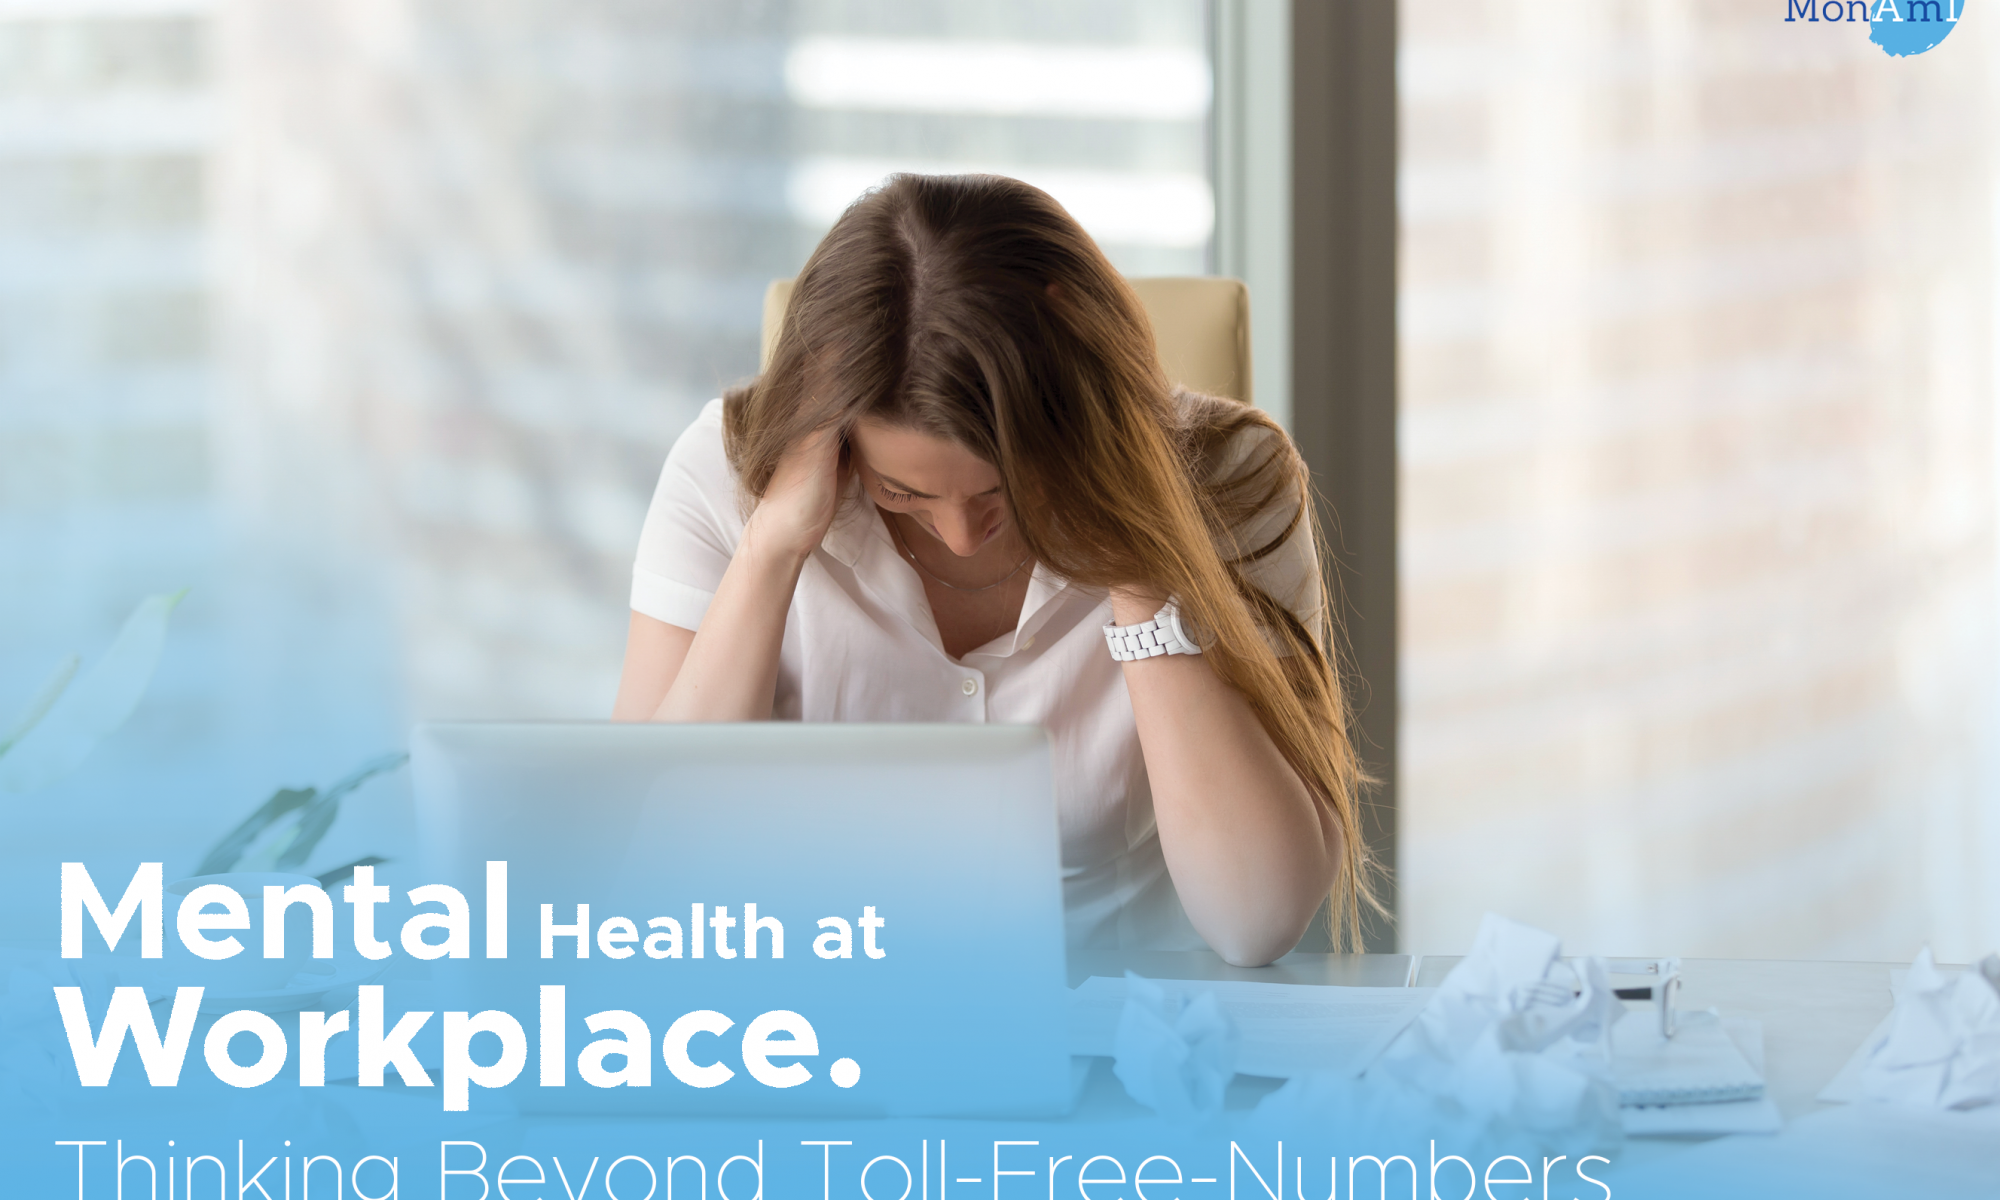 Mental Health at workplace